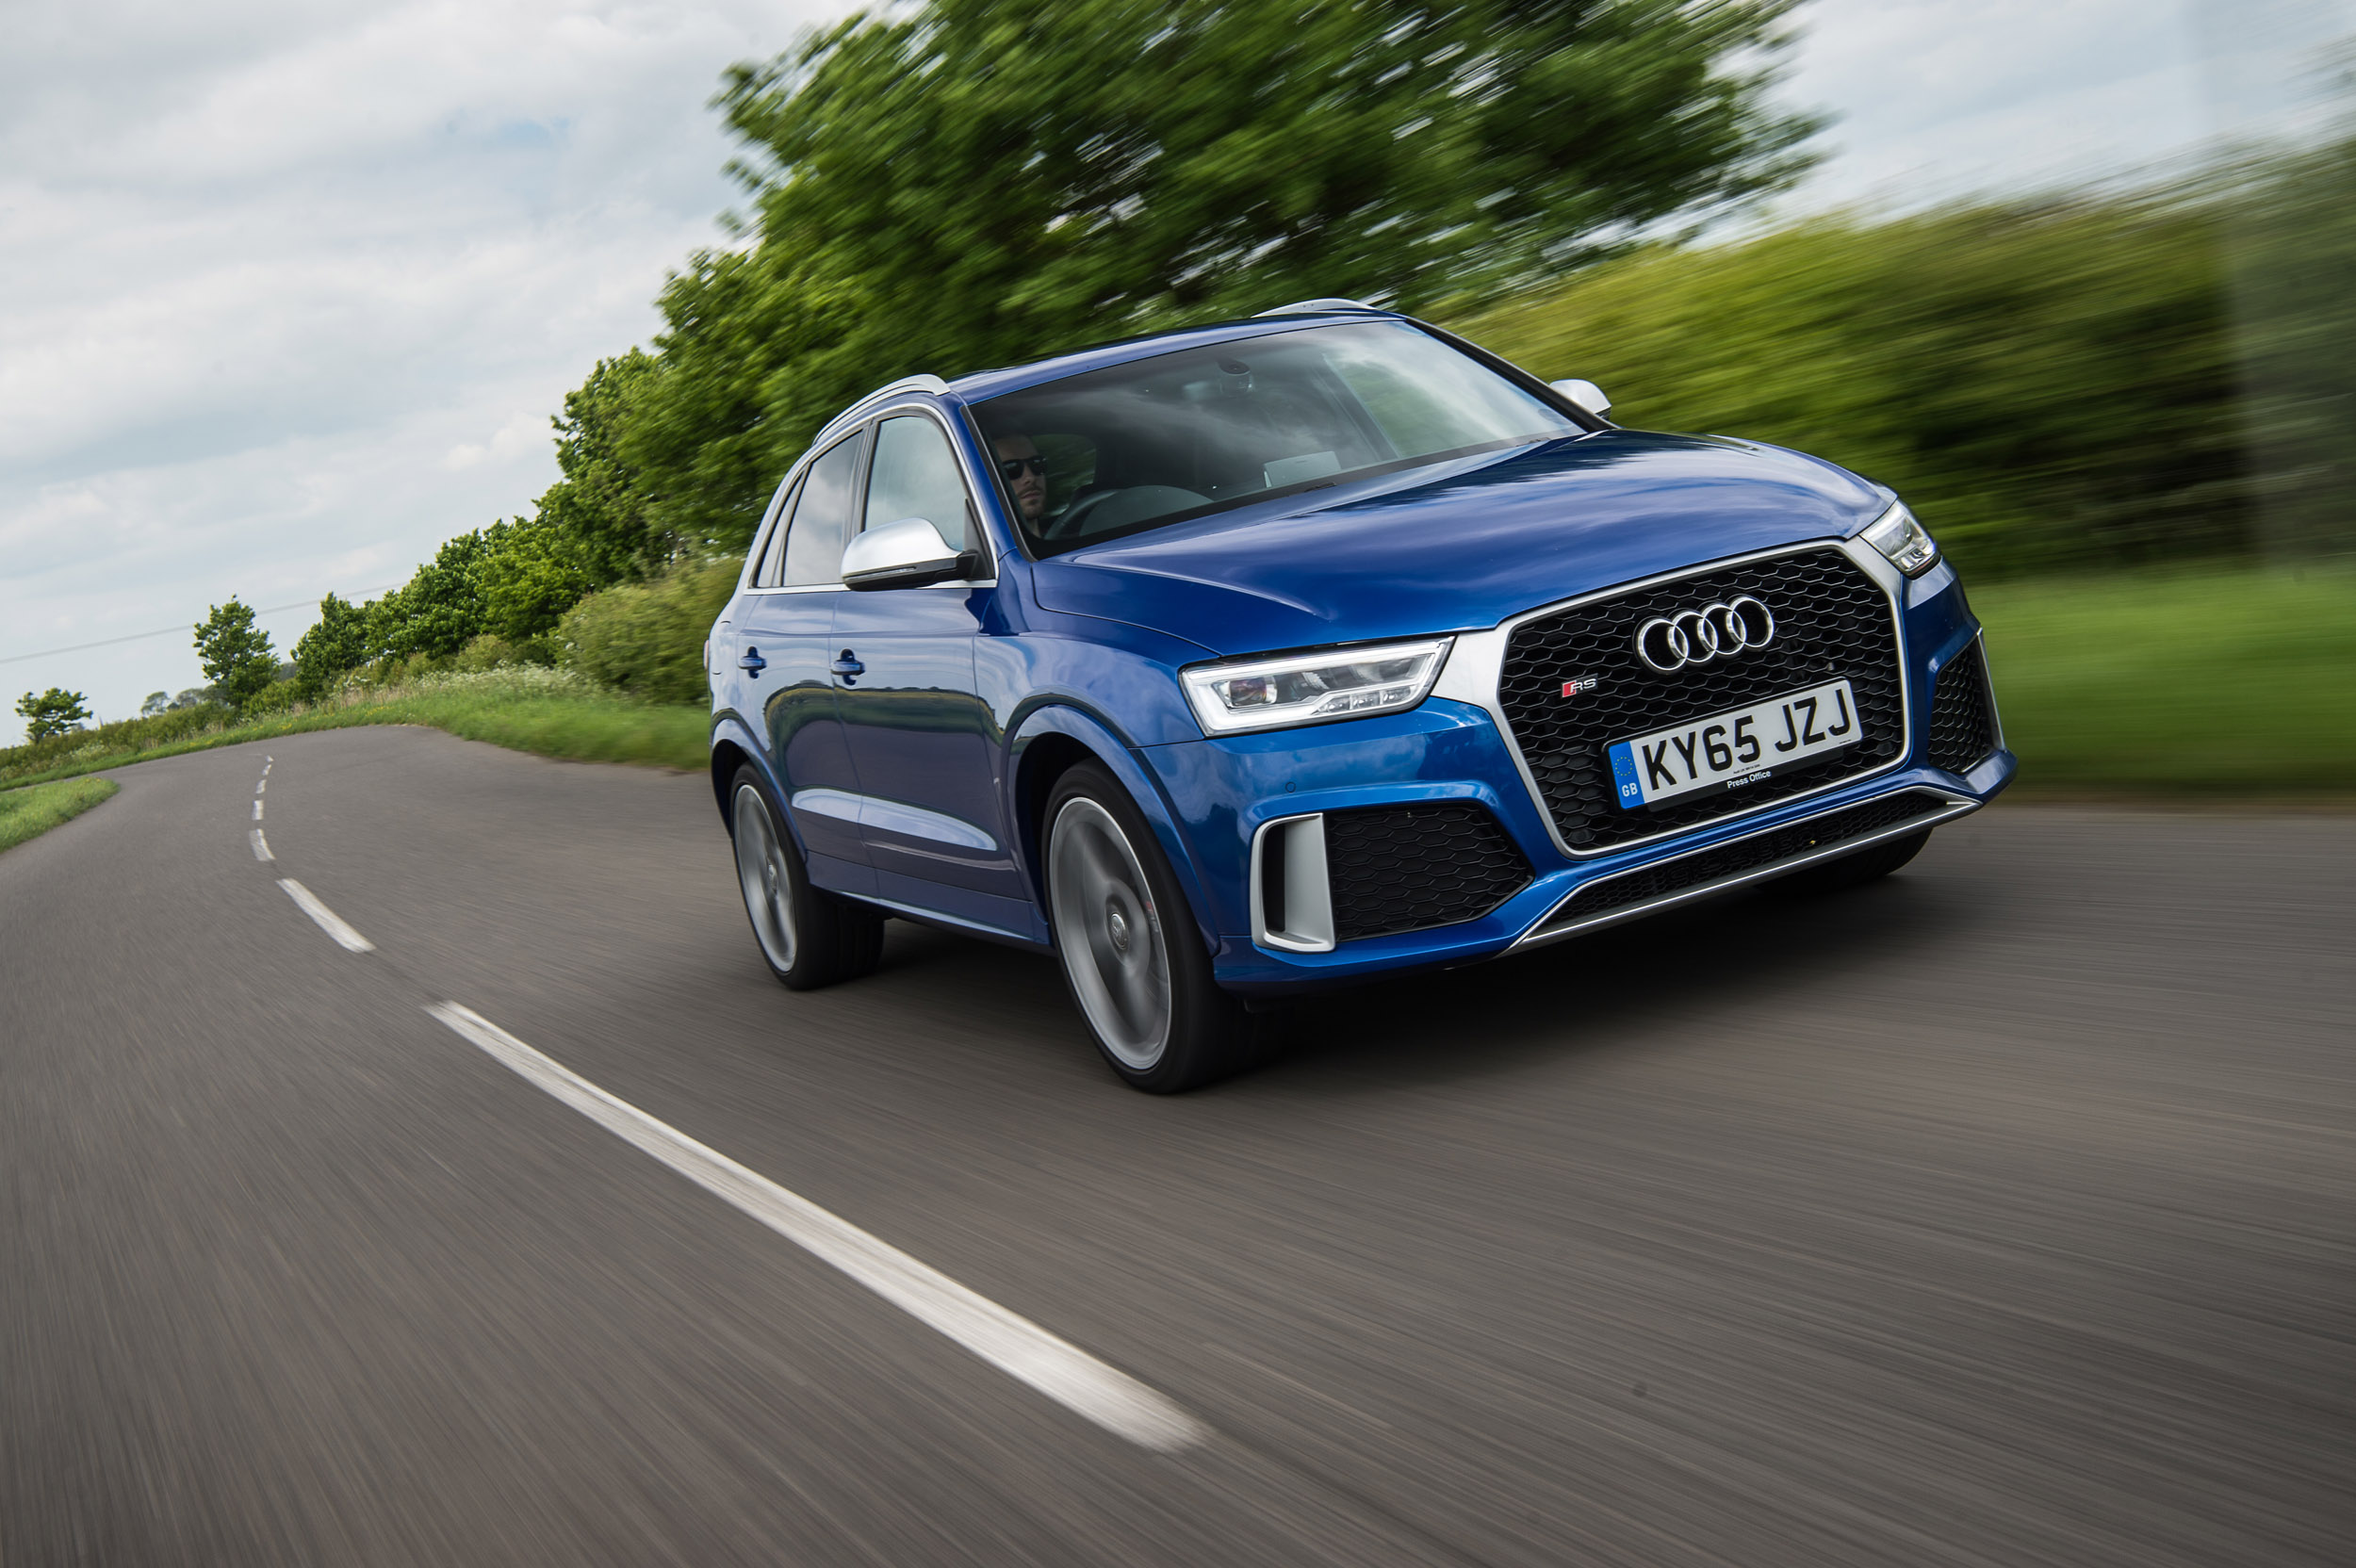 Audi Rs Q3 Review Prices Specs And 0 60 Time Evo